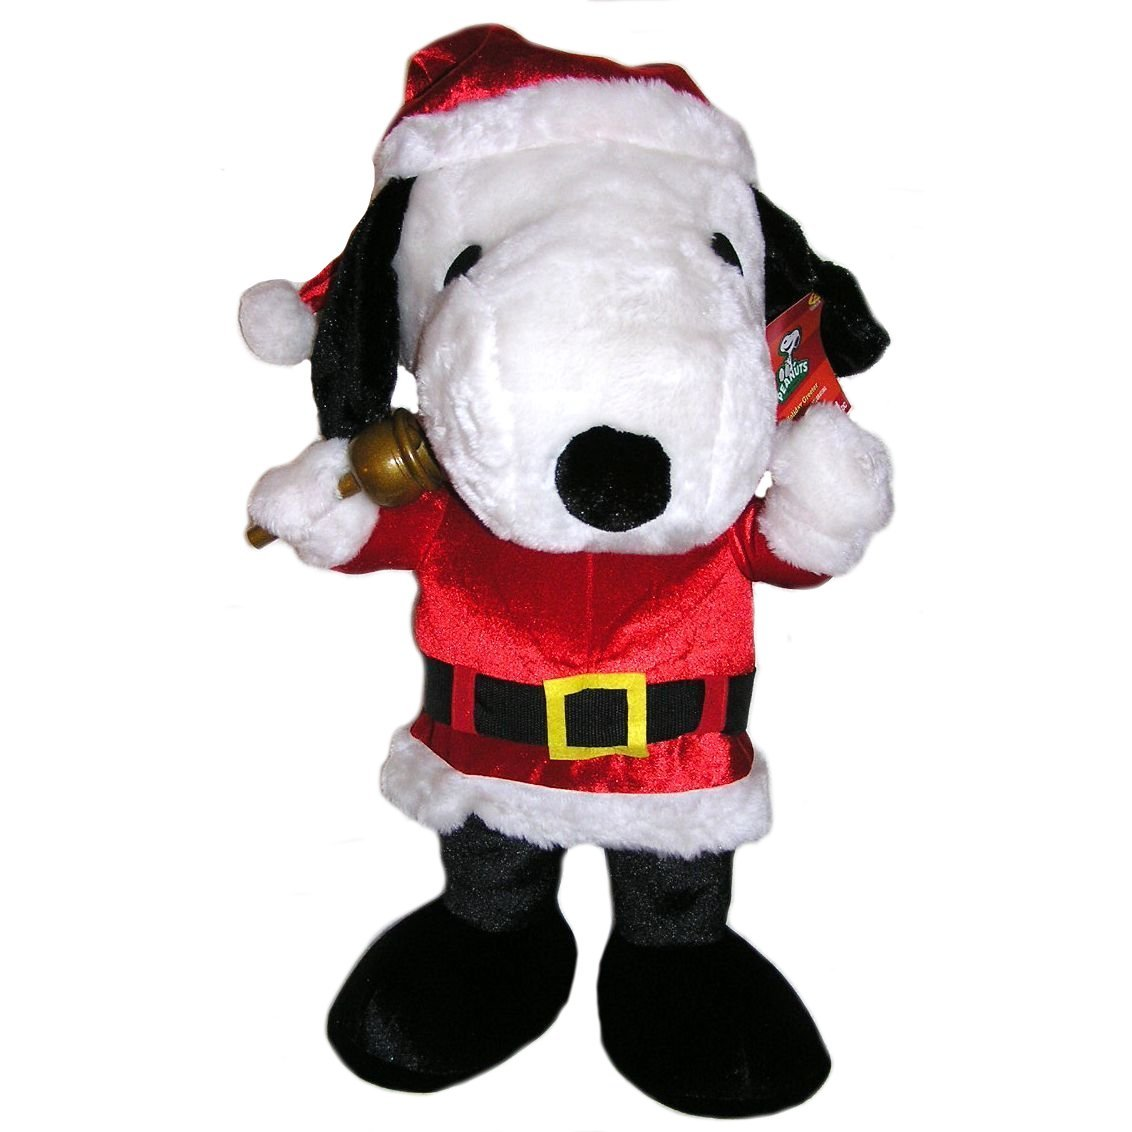 amazoncom peanuts large 24 plush snoopy christmas holiday greeter doll in santa suit toys games - Christmas Snoopy